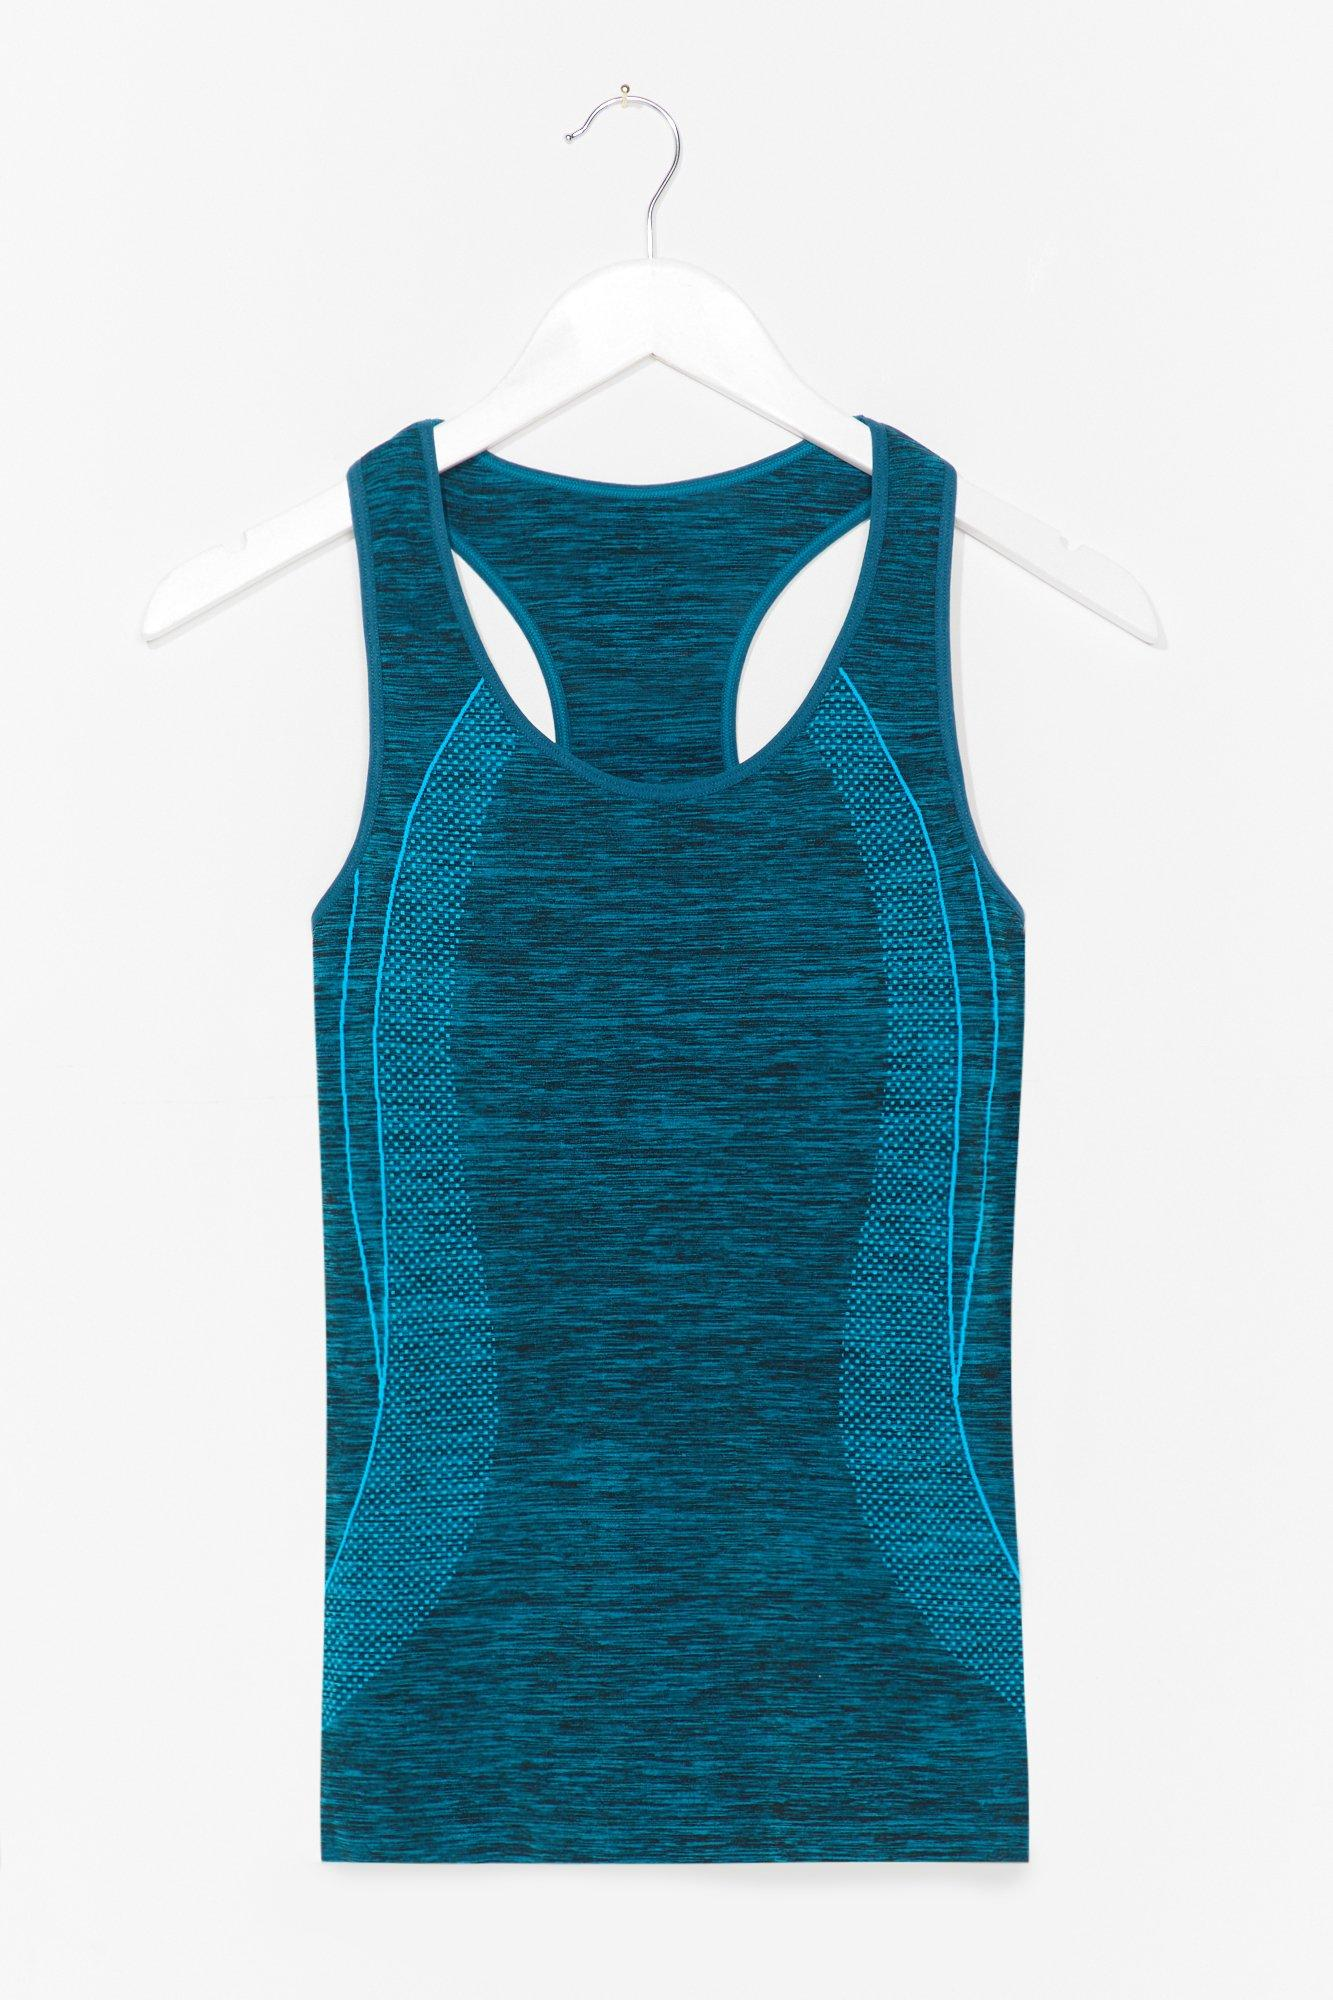 And Breathe Contrast Racerback Workout Top